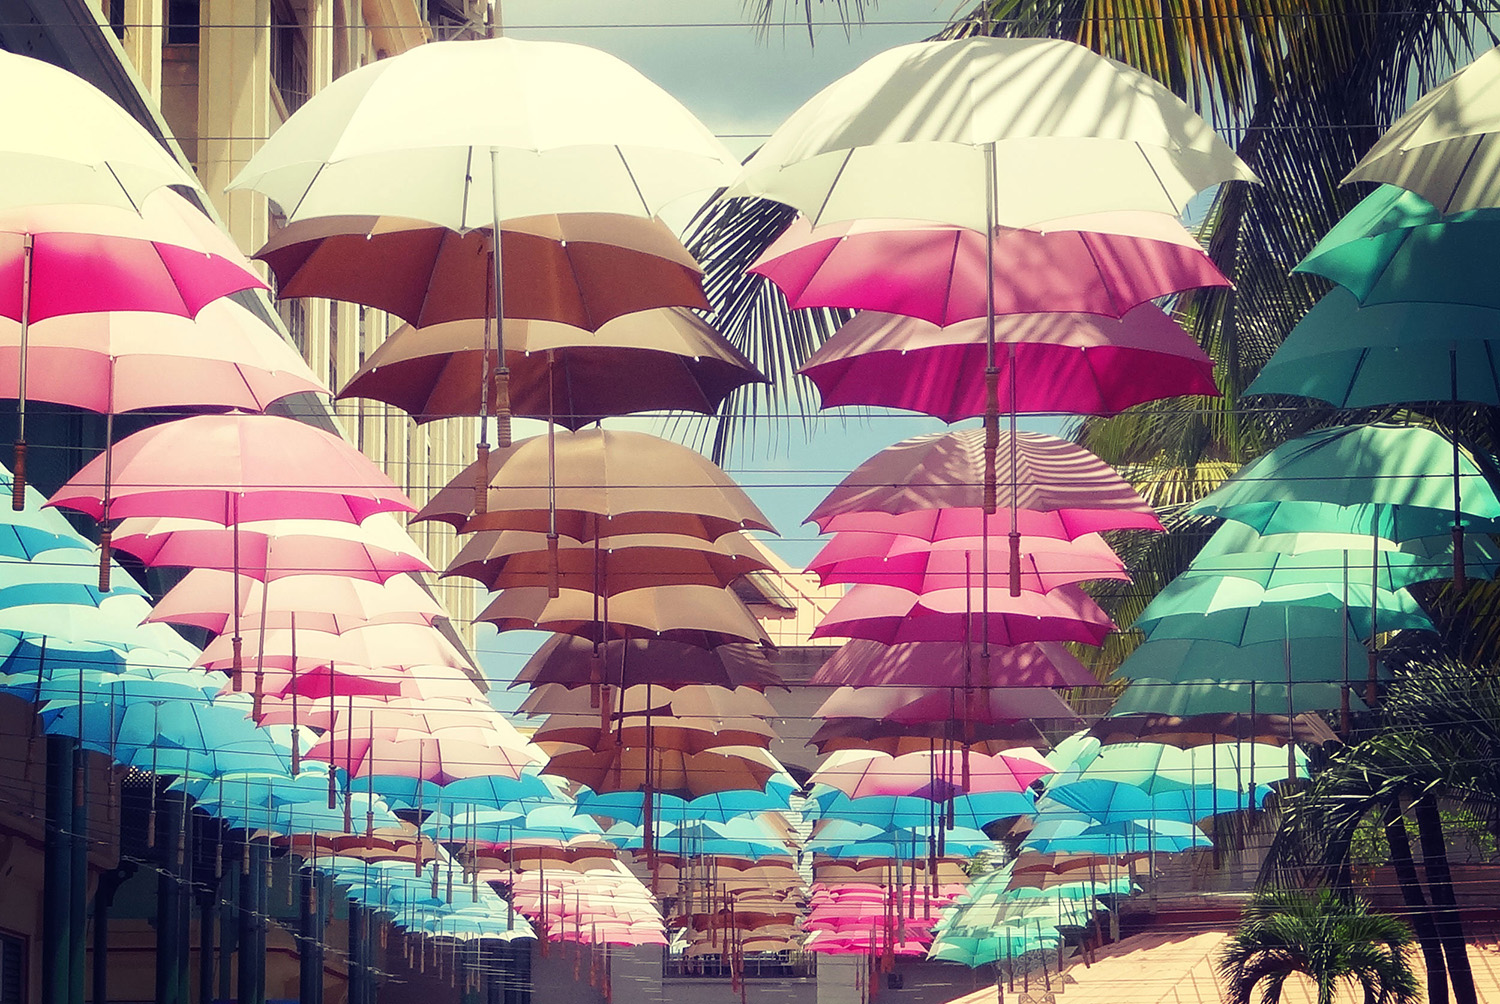 Umbrella Shaded Street, Port Louis, Mauritius. Photo credit: babyelephant